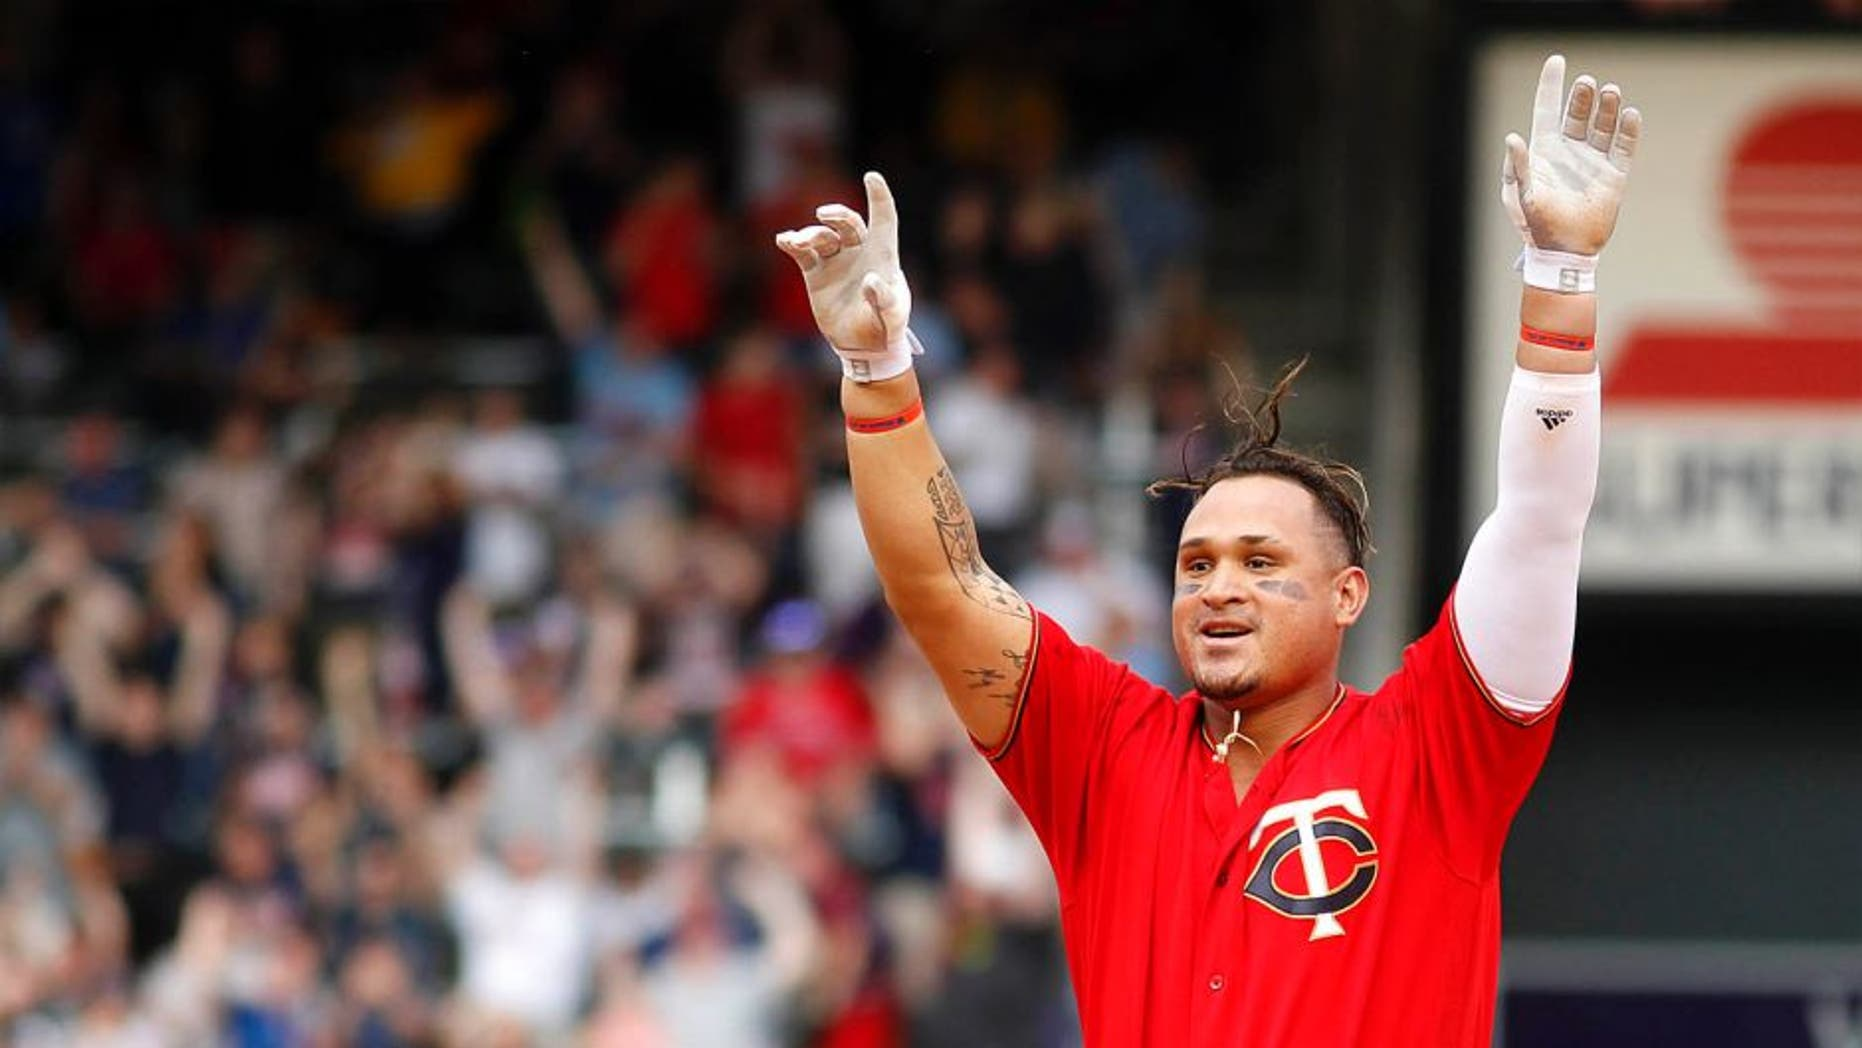 The Minnesota Twins' Oswaldo Arcia celebrates after driving in the winning run against the Los Angeles Angels in the 12th inning Sunday April 17, 2016, in Minneapolis.